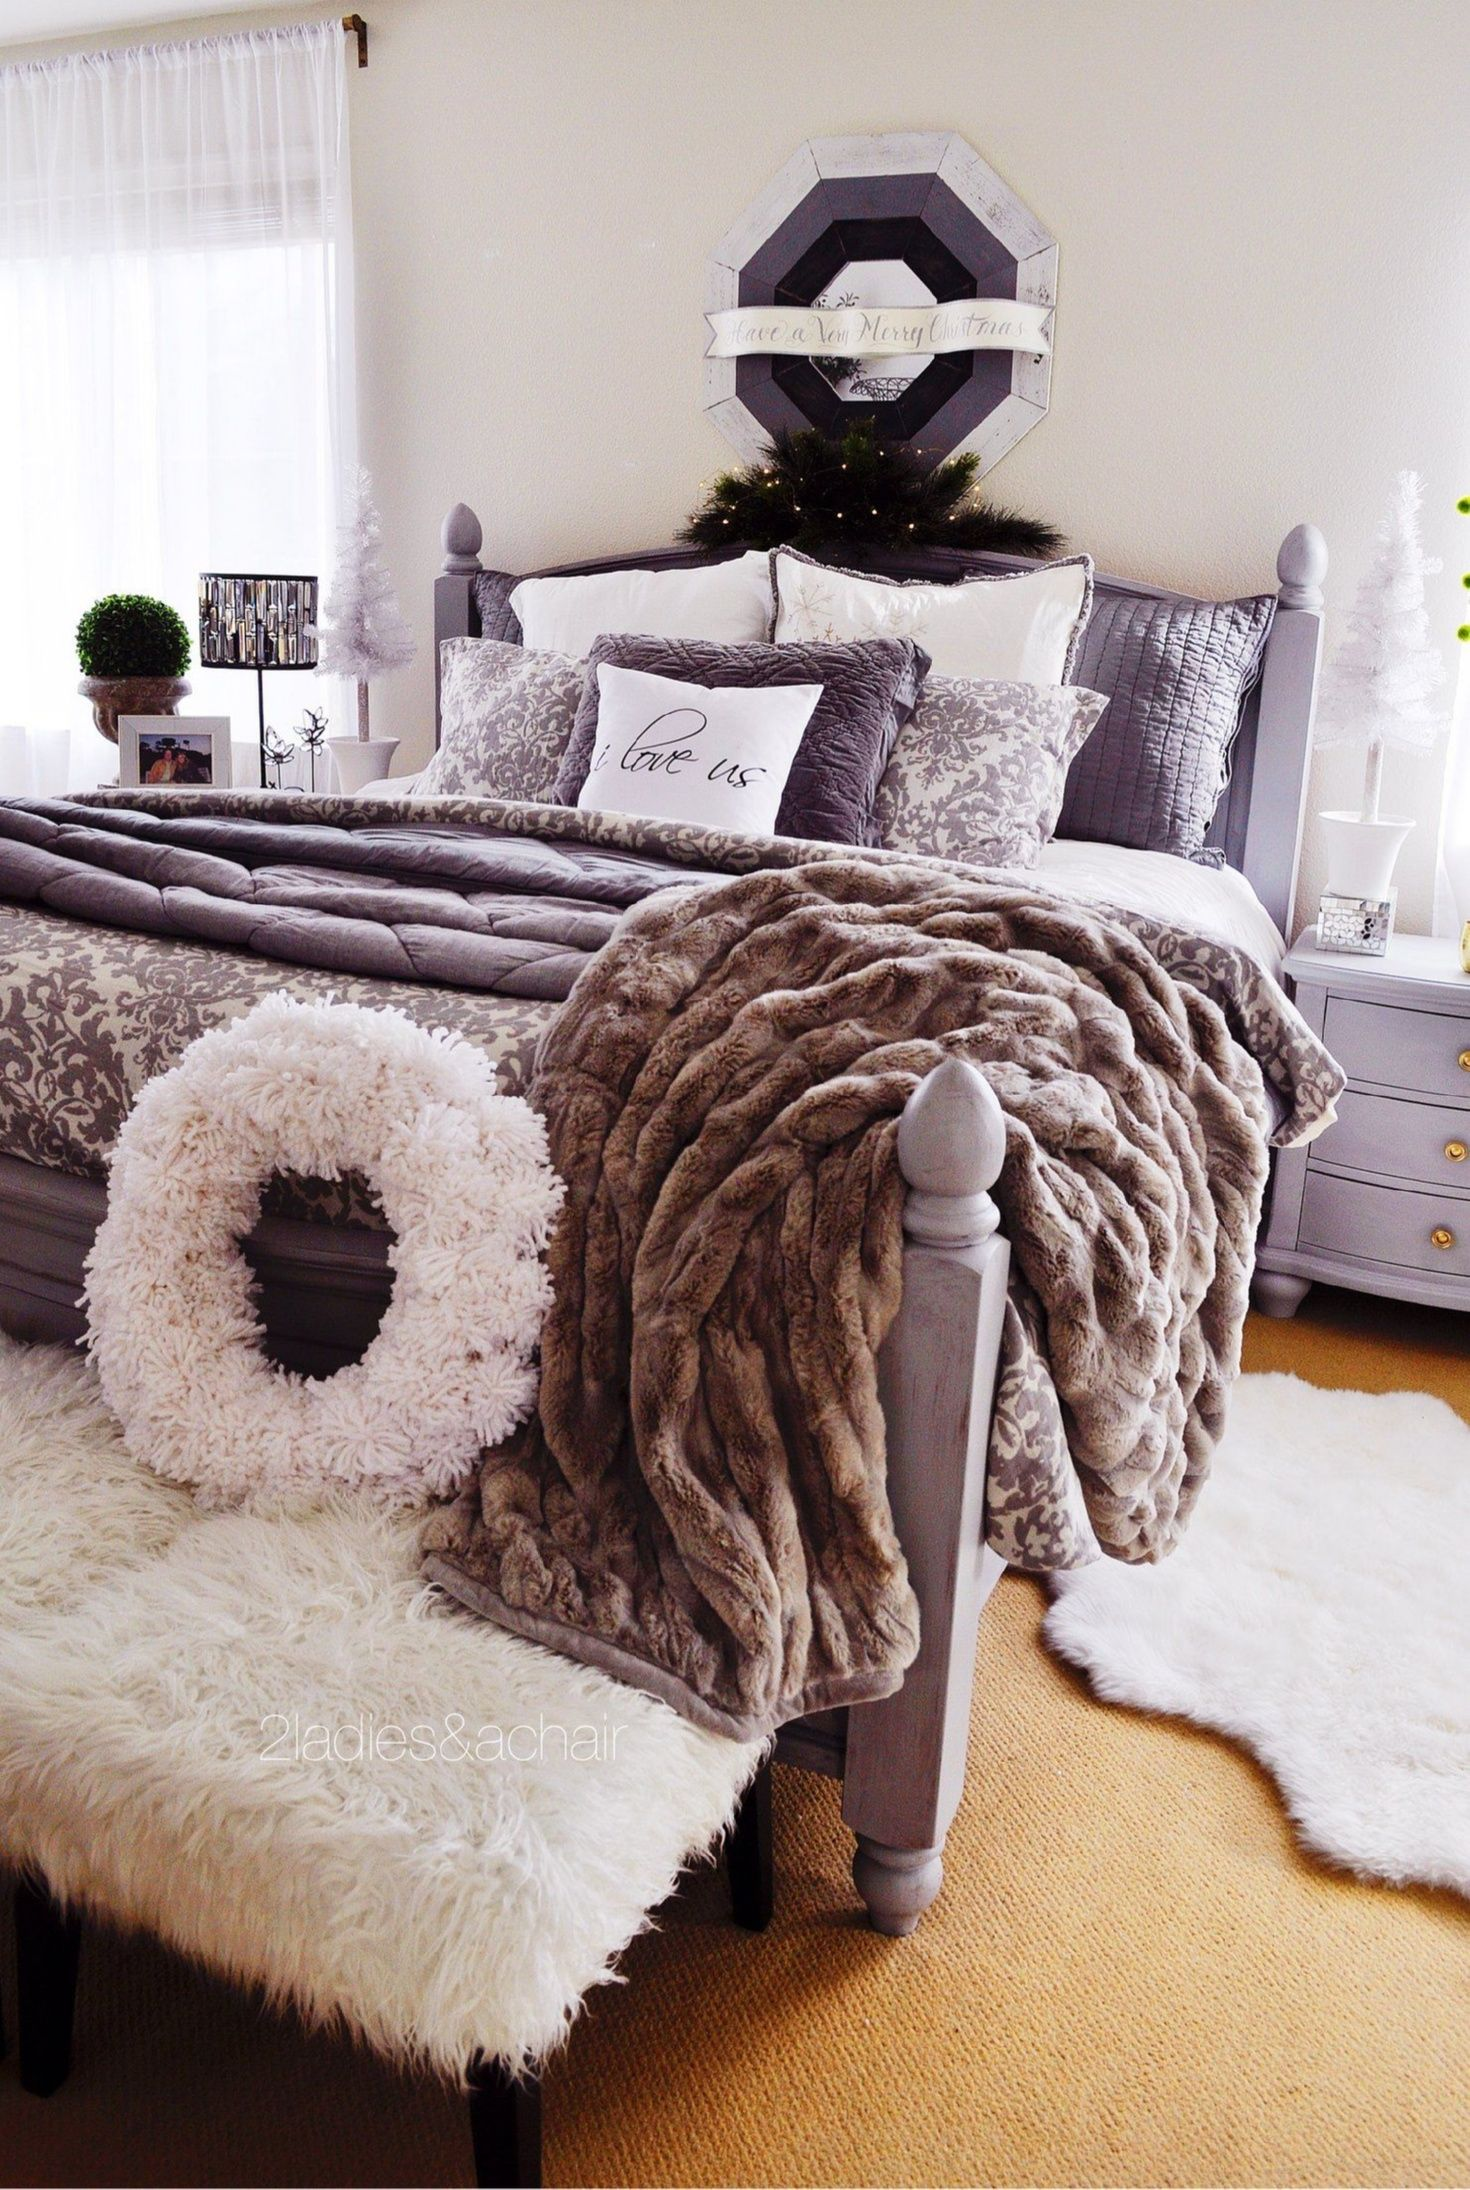 Comfy Bedding Sets For The Bedroom In Winter I Like To Add Many Layers Of Texture To The Bed To Create A Warm Co Cozy Bedroom Warm Comfy Bed Comfy Bedroom